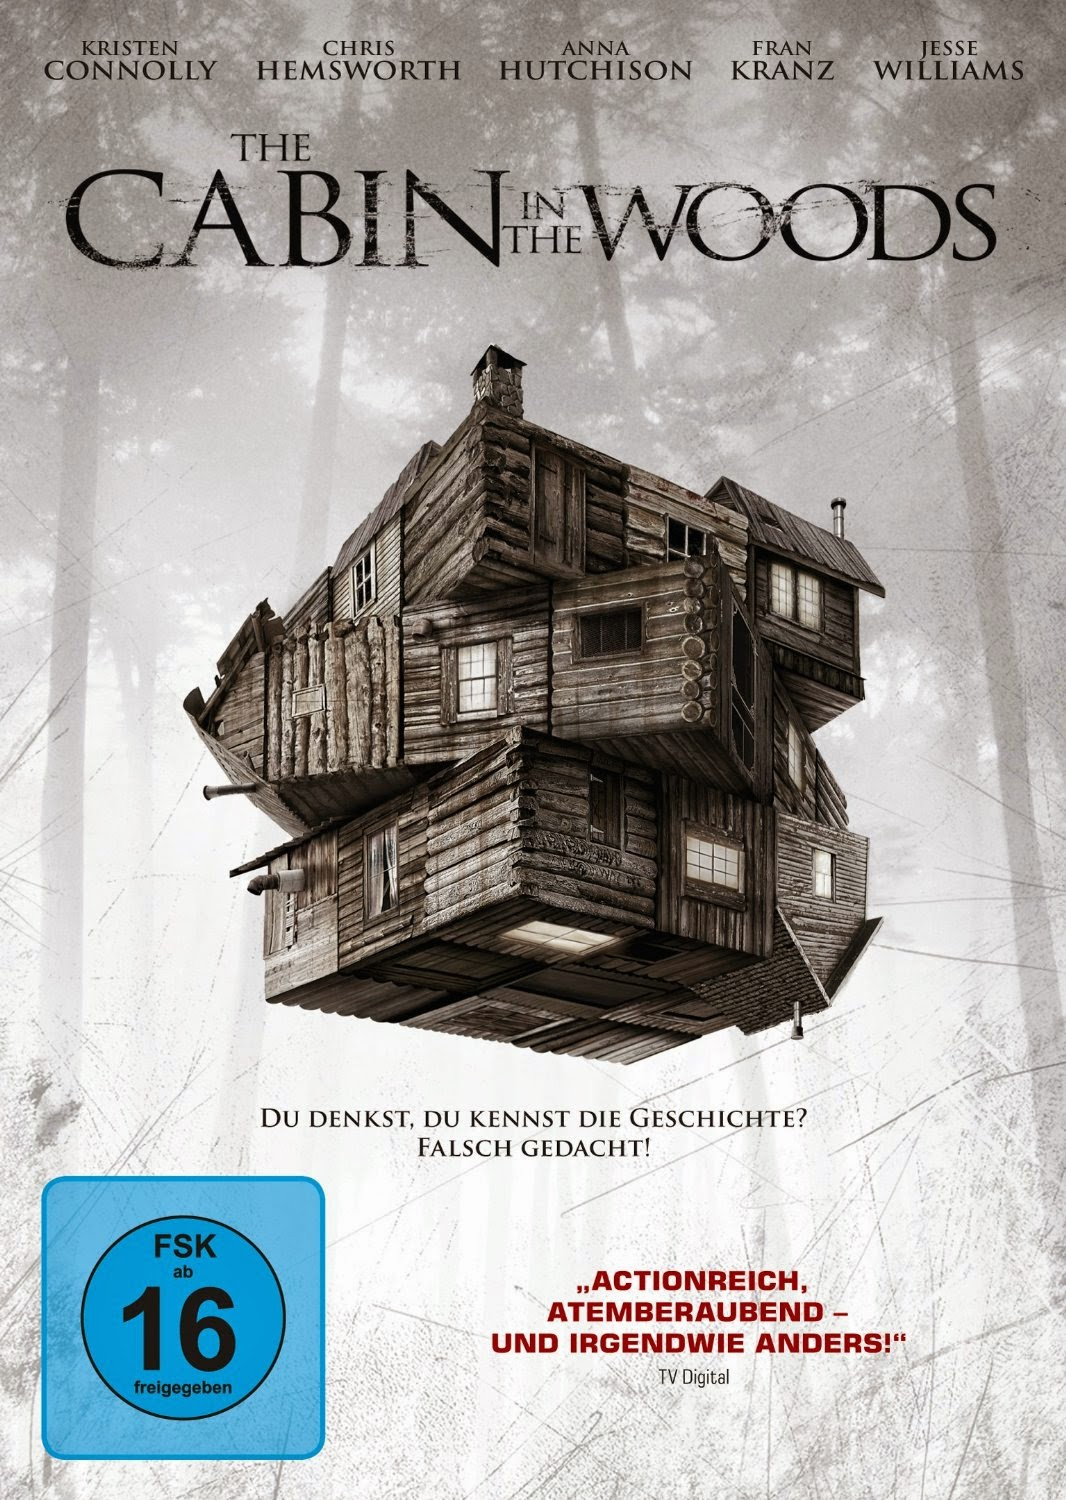 http://www.amazon.de/Cabin-Woods-Kristen-Connolly/dp/B009ANP6MK/ref=sr_1_1?s=dvd&ie=UTF8&qid=1401293061&sr=1-1&keywords=cabin+in+the+woods